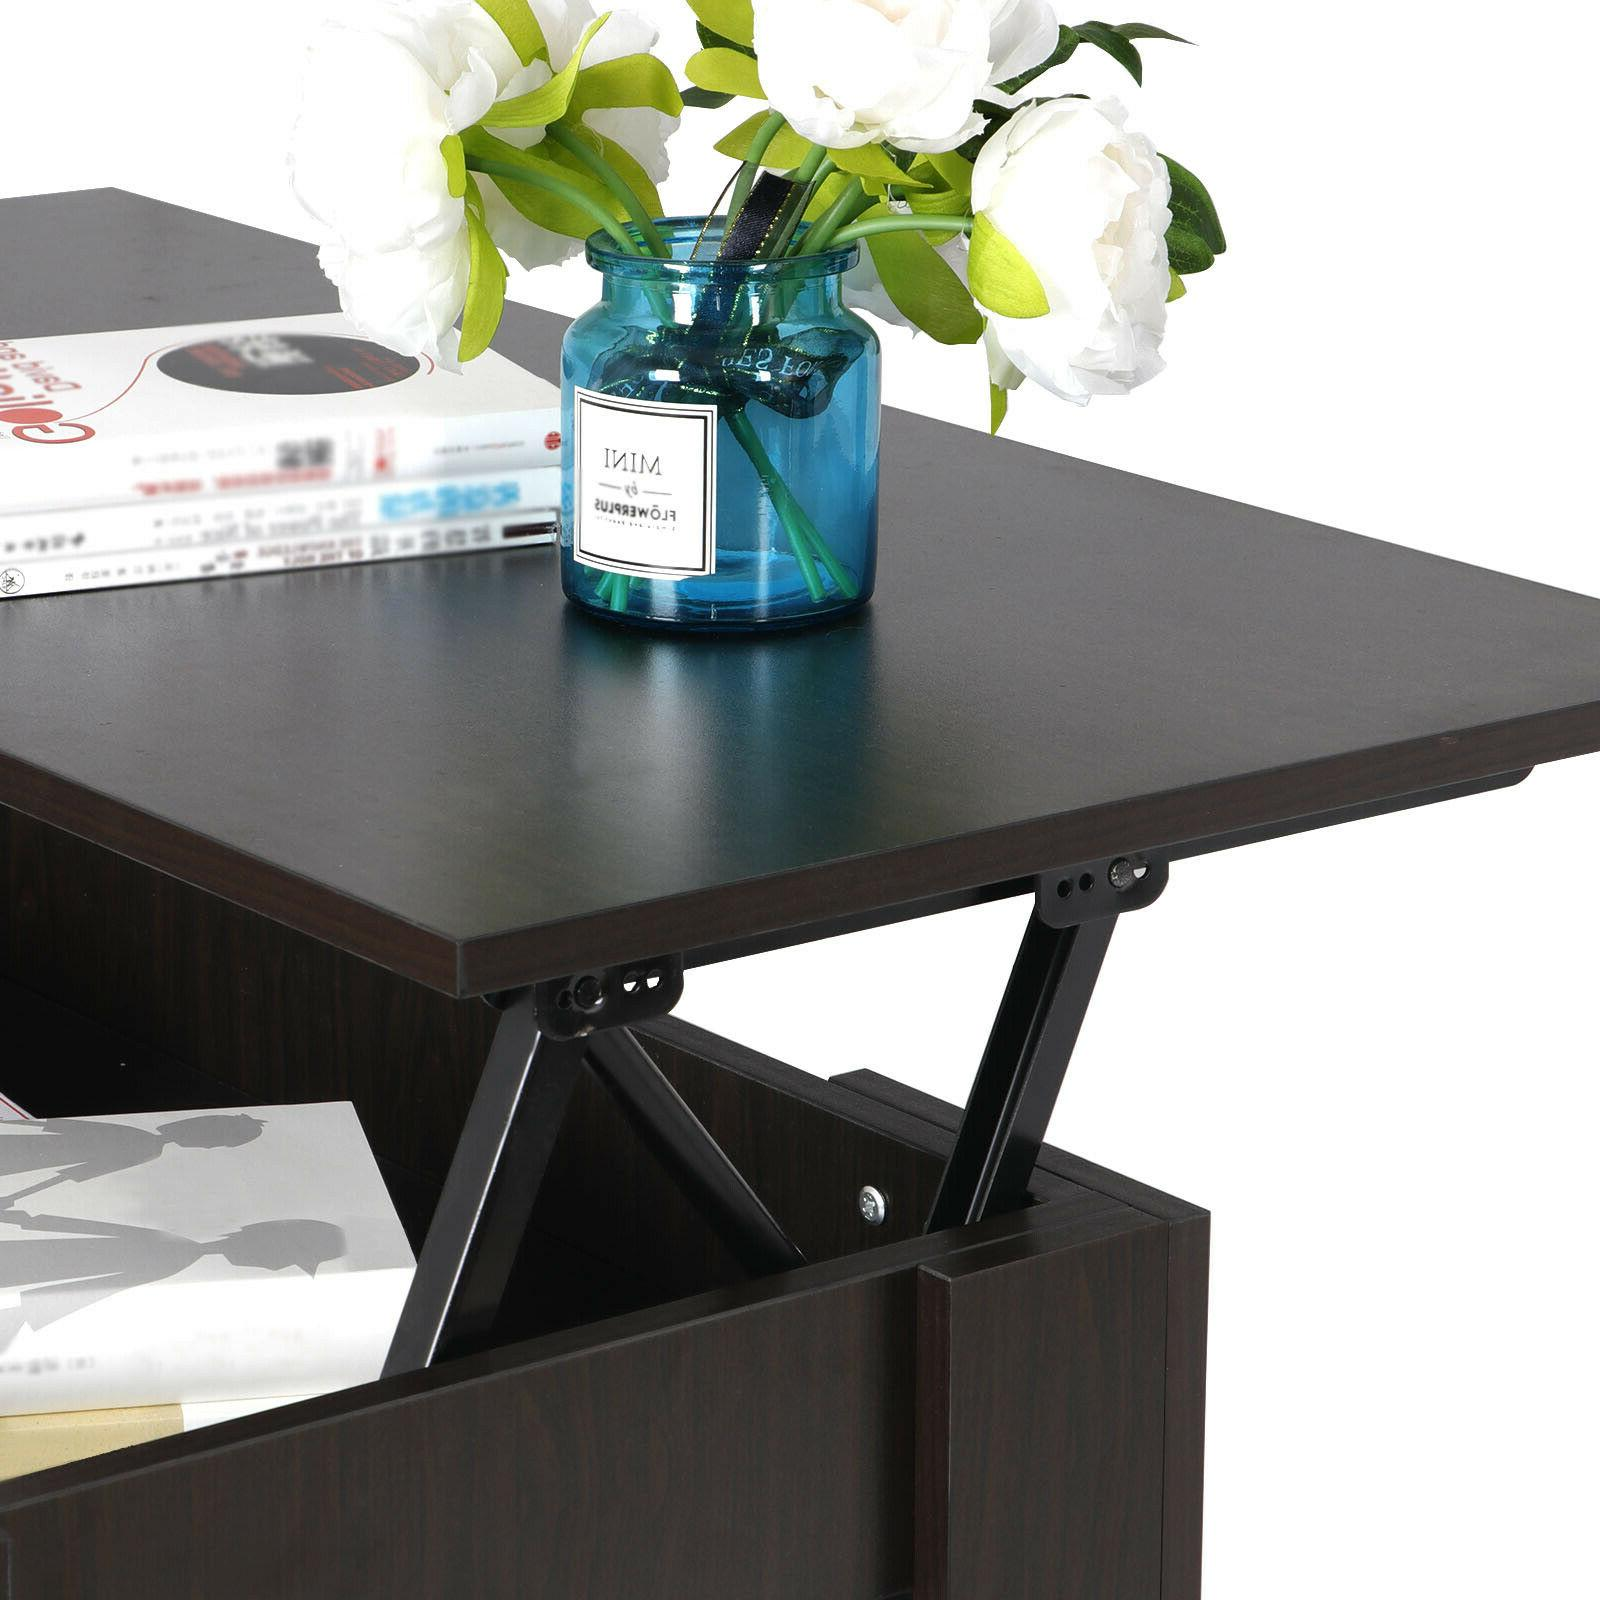 Lift-up Table Storage Brown